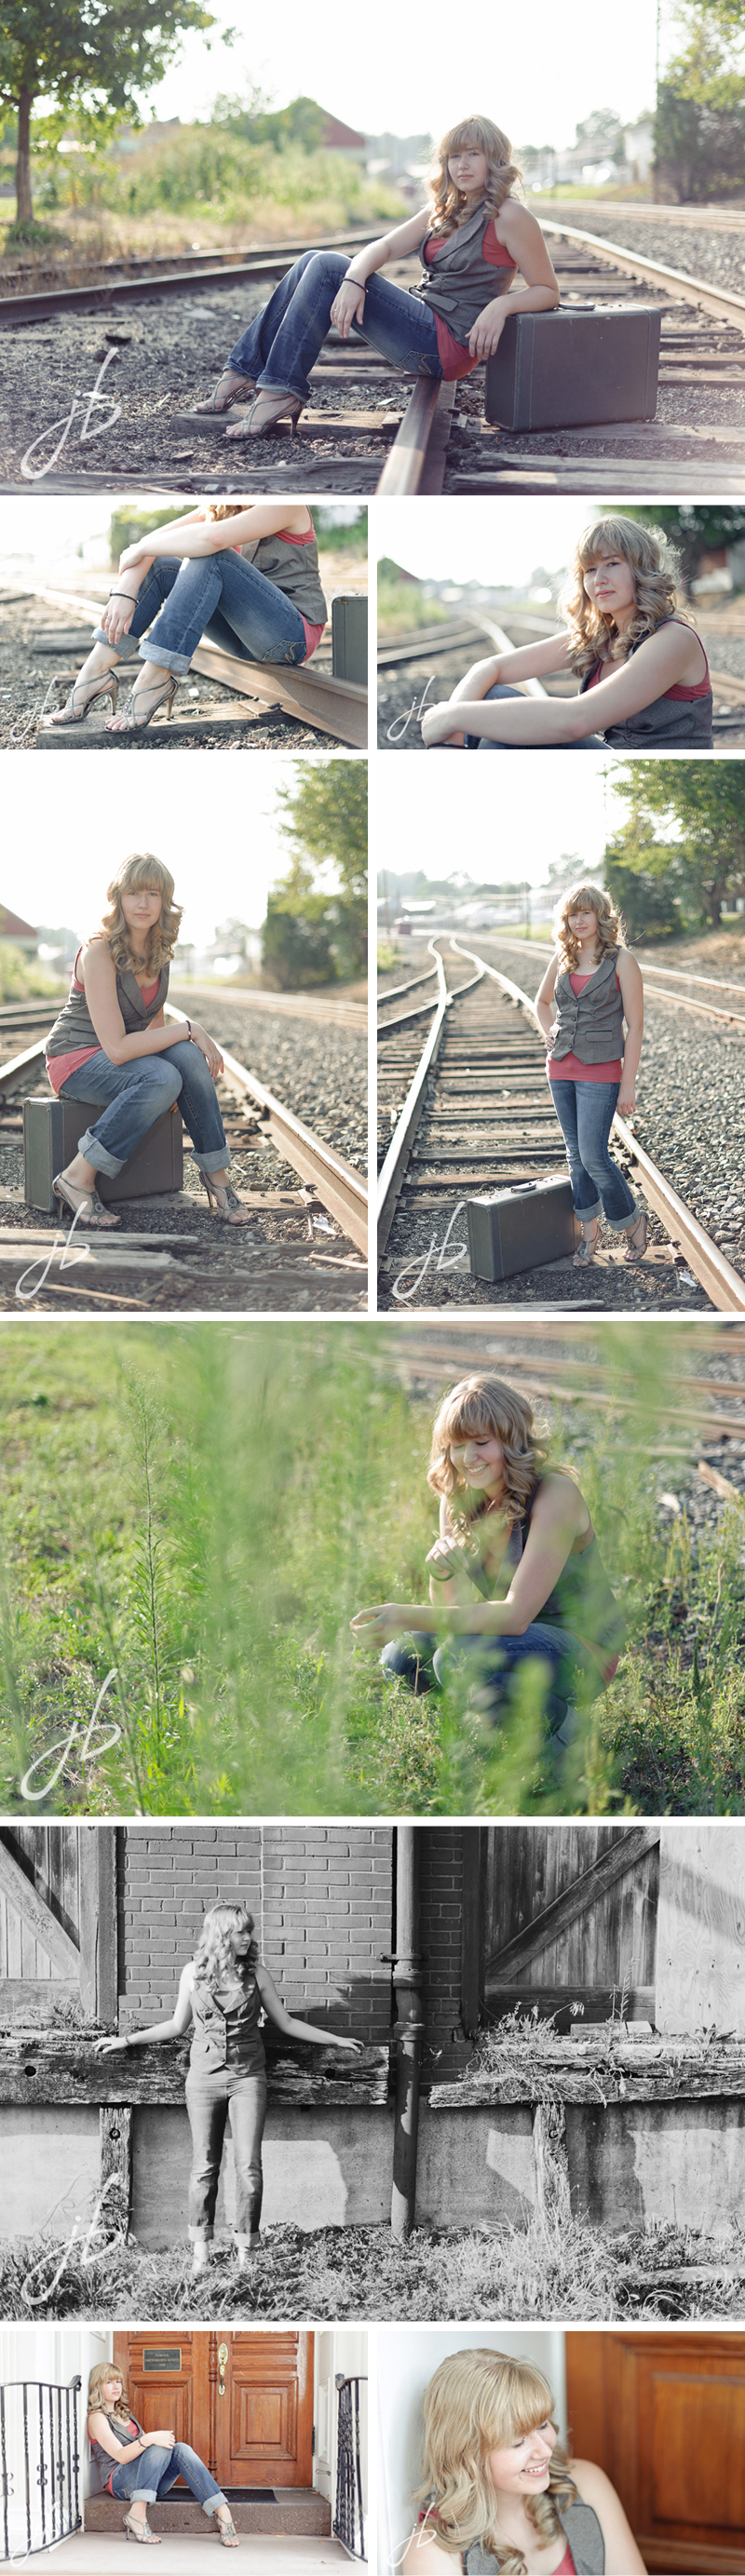 Lititz PA Senior portrait photography by Jeremy Bischoff Photography 004